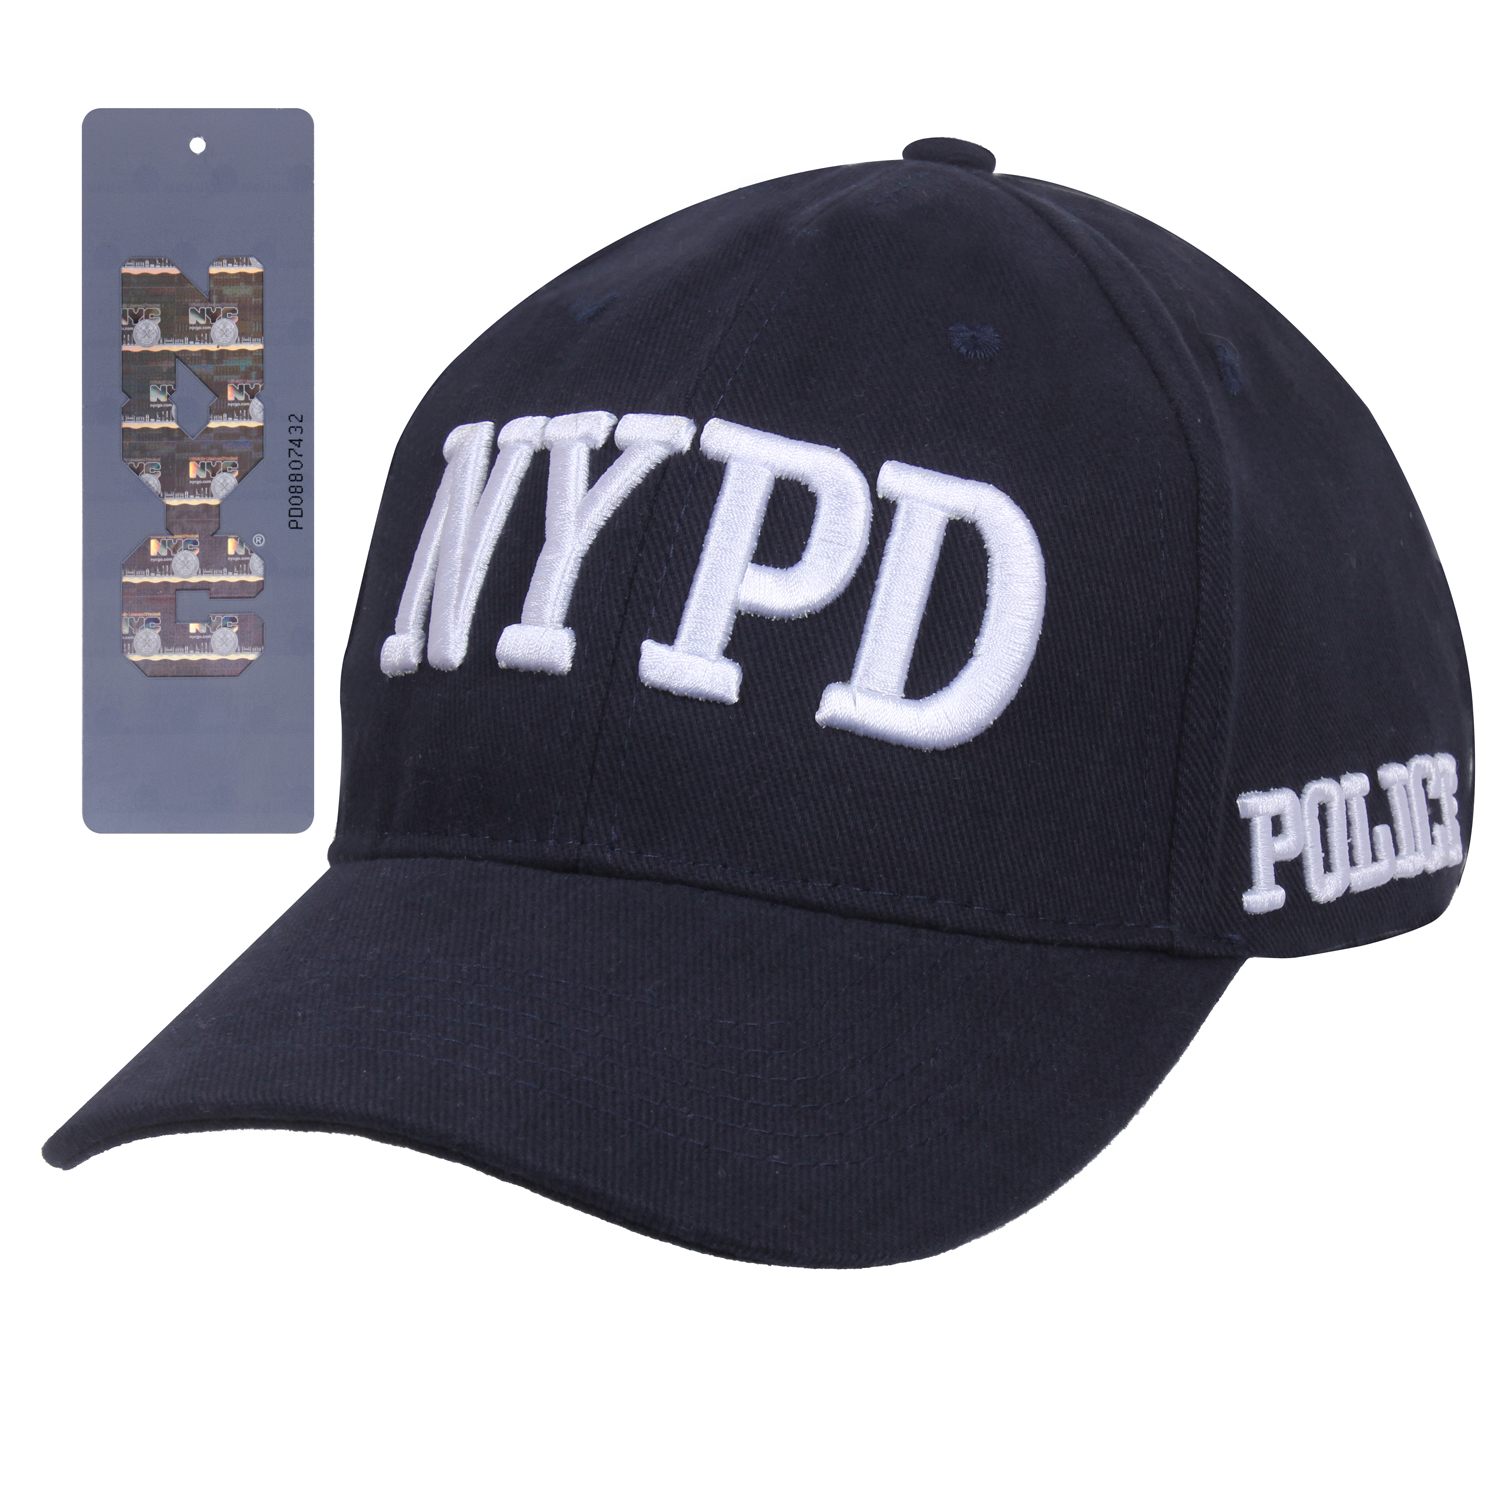 0f531543c10 Officially Licensed NYPD Adjustable Cap